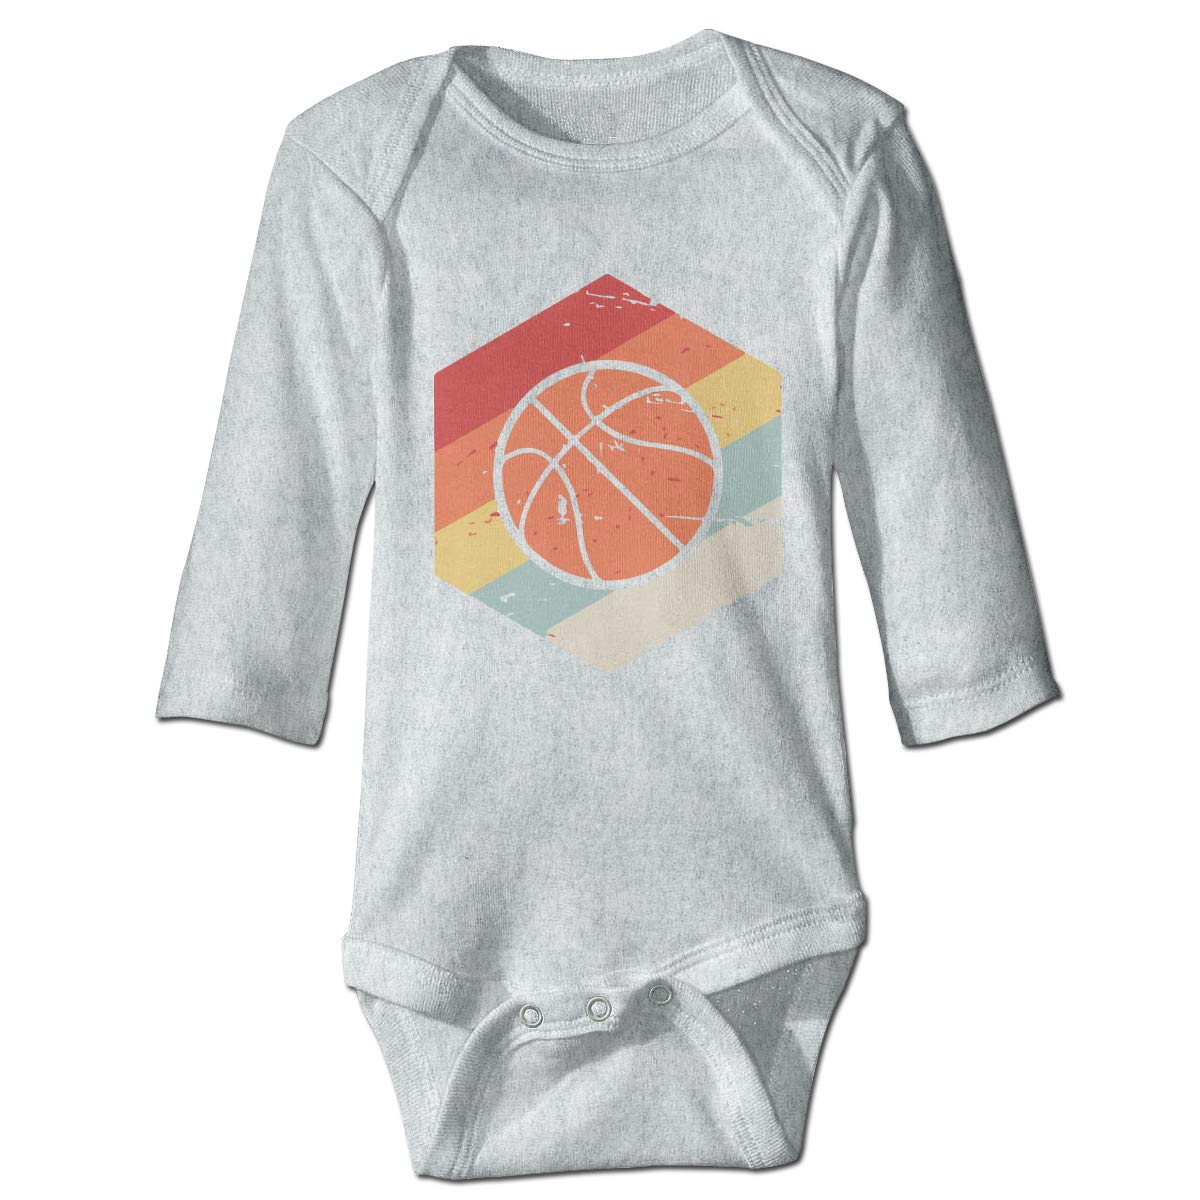 Baby Infant Toddler Romper Bodysuit Infant Retro 70s Basketball Icon Long Sleeve Funny Baby Clothes